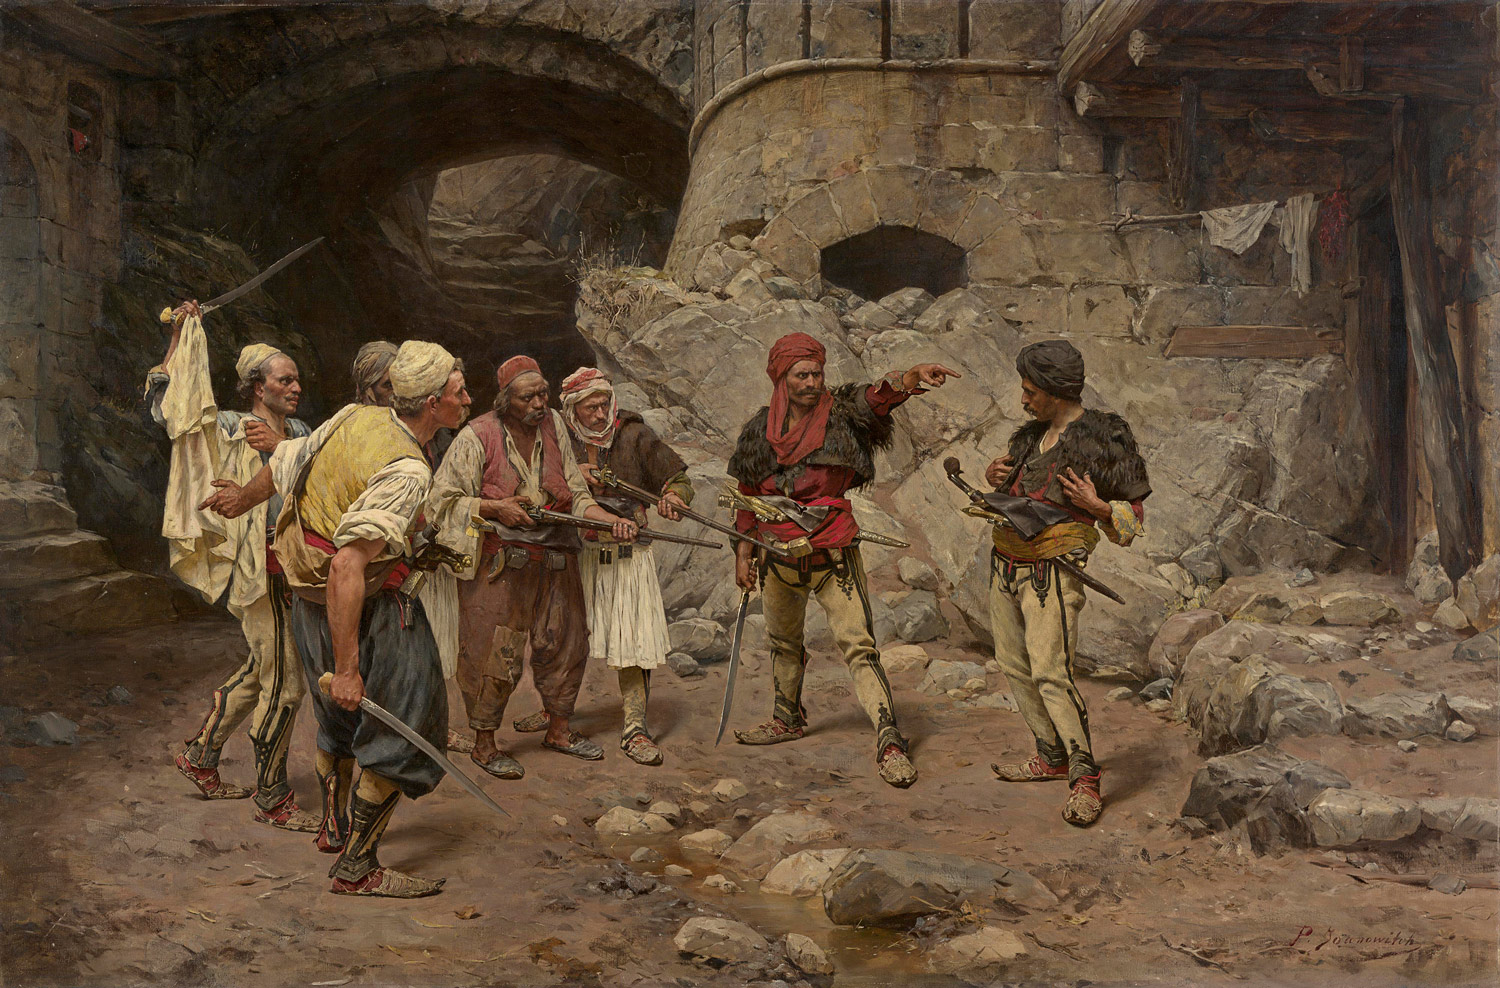 Paul JOANOWITCH born Serbia 1859, died Austria 1957, worked throughout Europe 1885–1957, Egypt, Turkey and Russia 1886–95 The traitor 1885–90 oil on canvas 100.4 x 150.5 cm National Gallery of Victoria, Melbourne Purchased, 1890